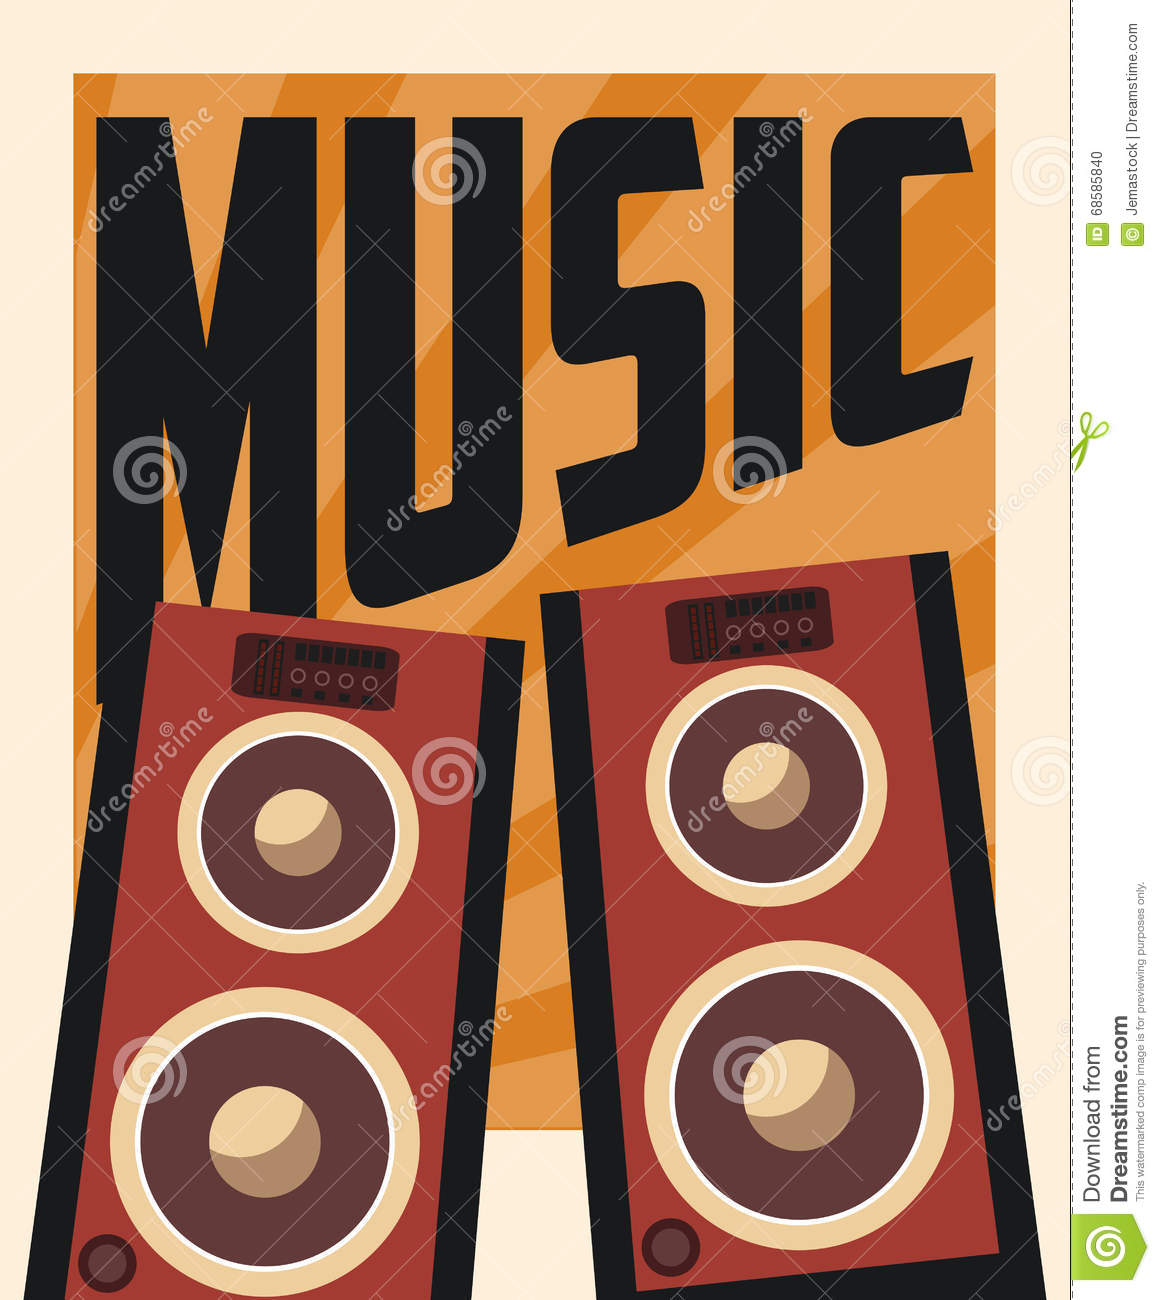 Poster design vector download - Retro Music Poster Design Vector Illustration Stock Vector